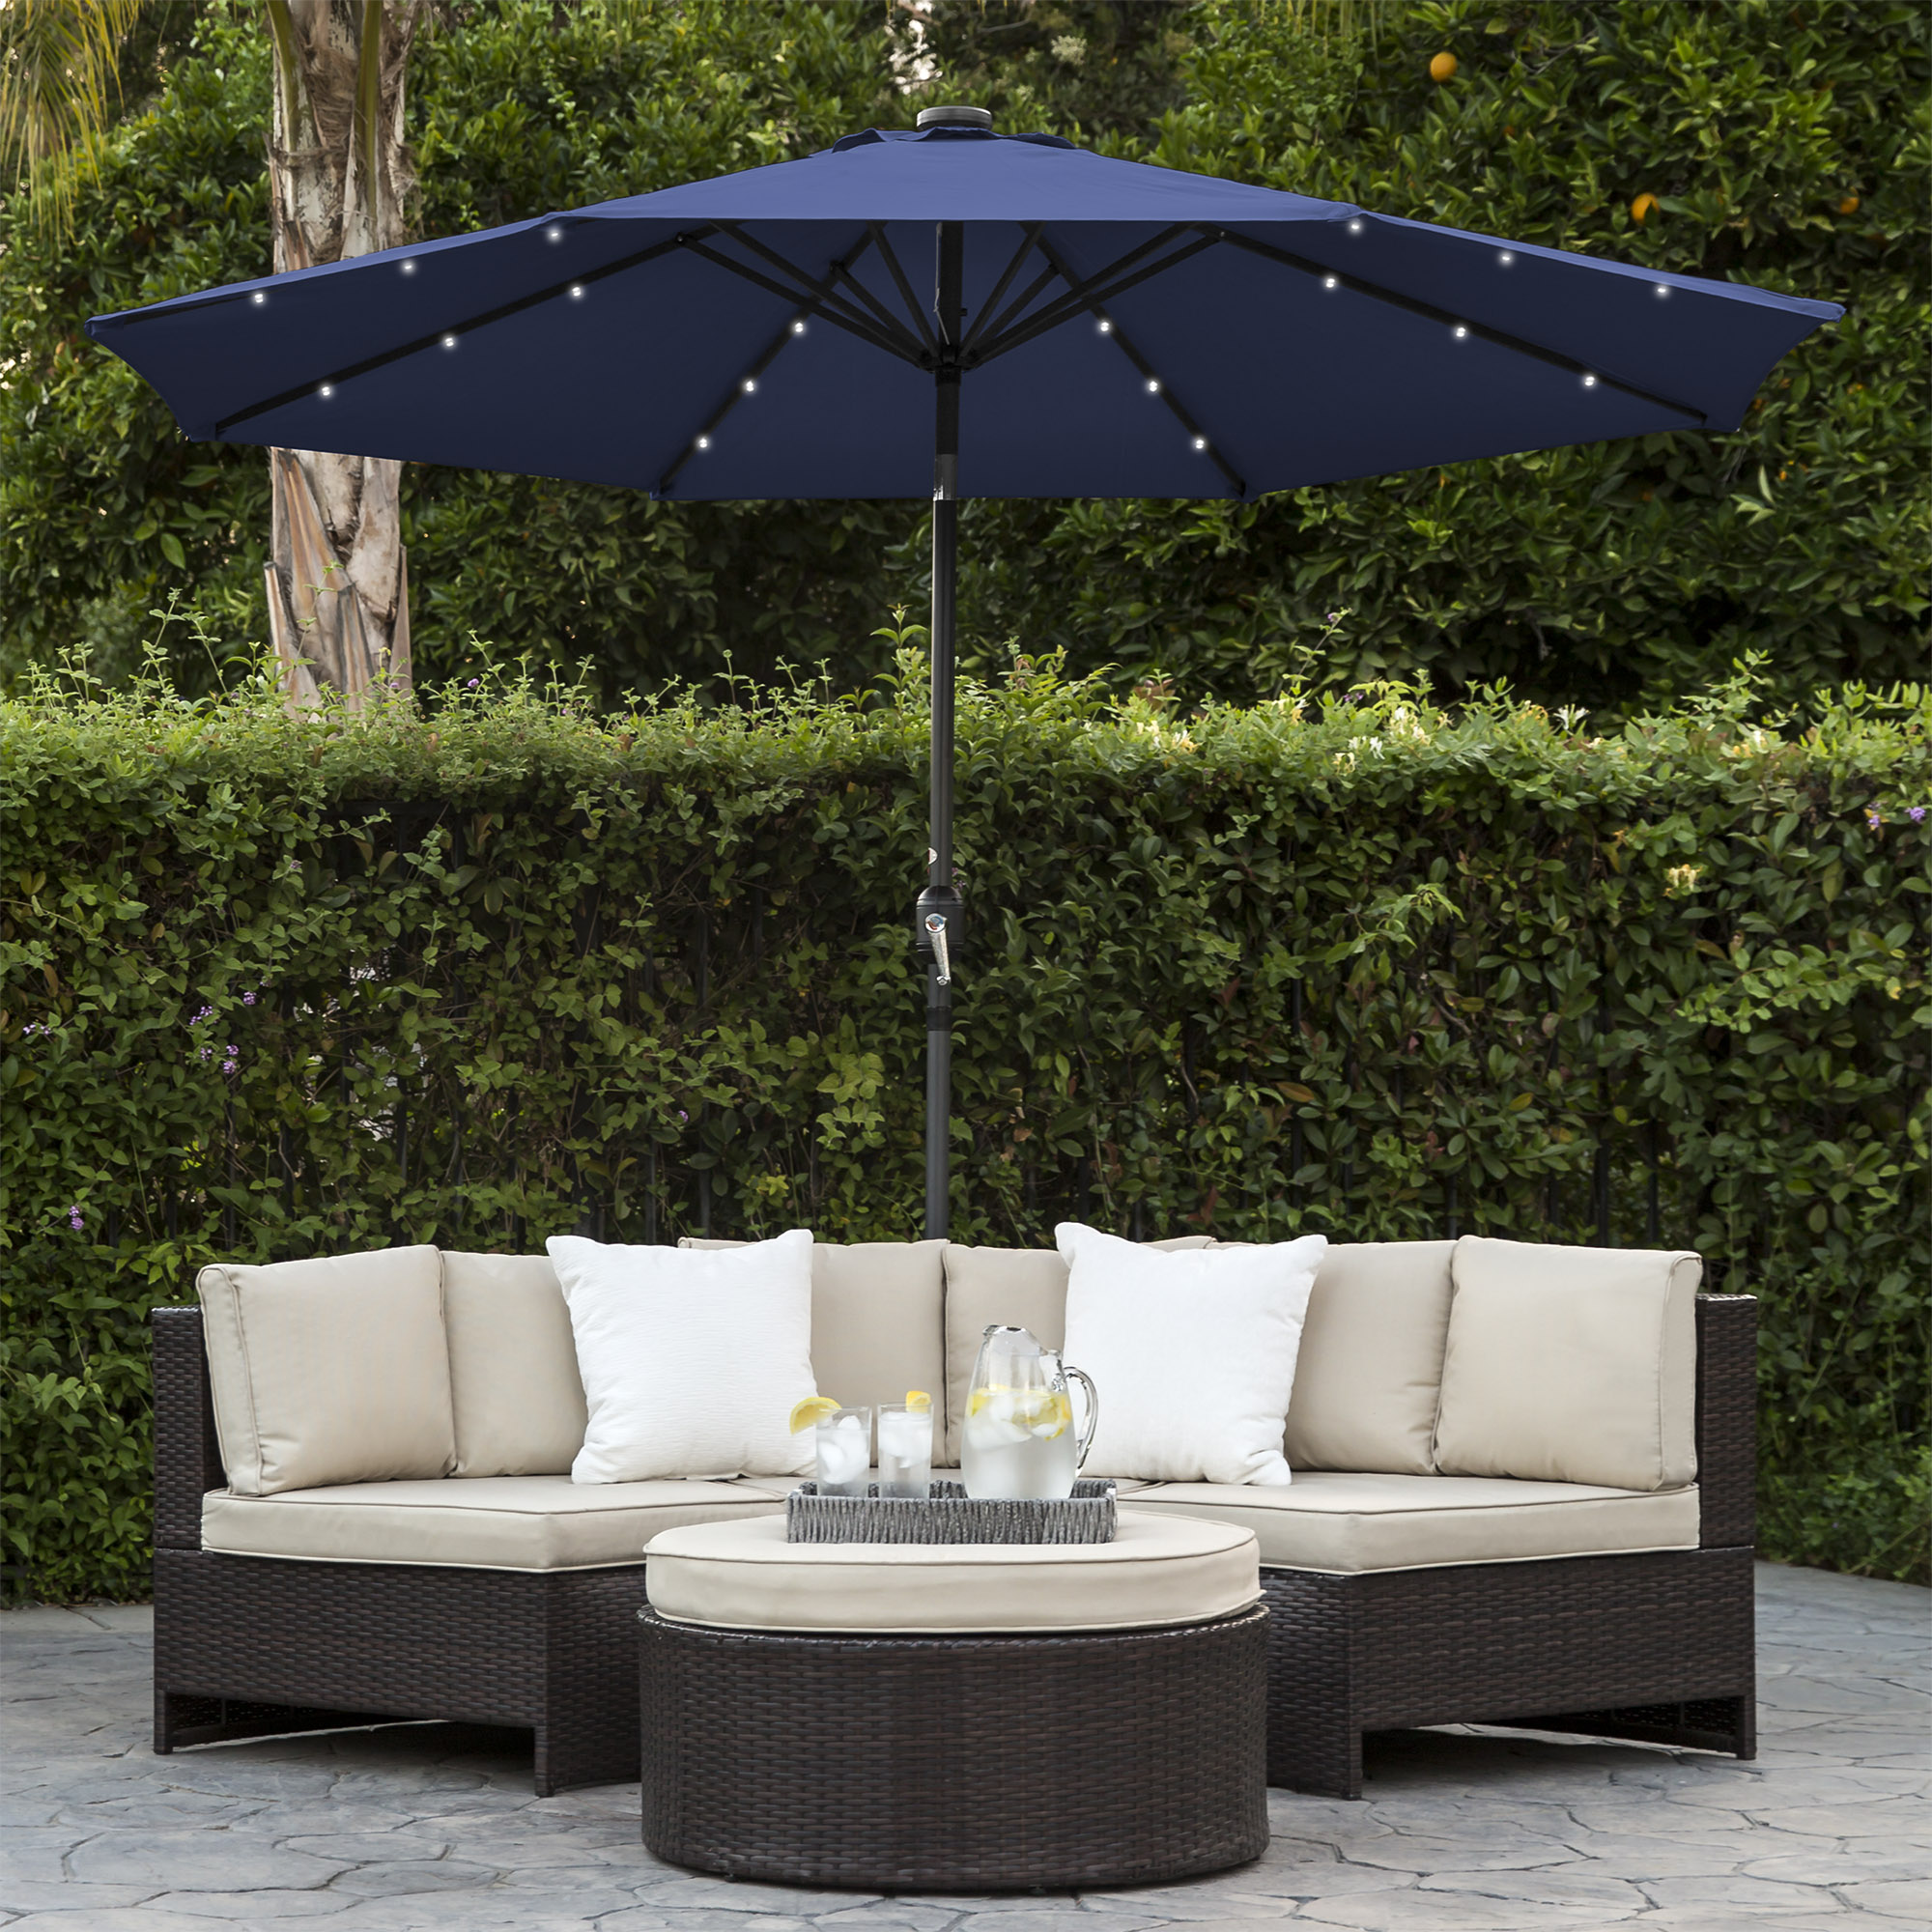 BCP-10ft-Solar-LED-Lighted-Patio-Umbrella-w-Tilt-Adjustment-Fade-Resistance thumbnail 43